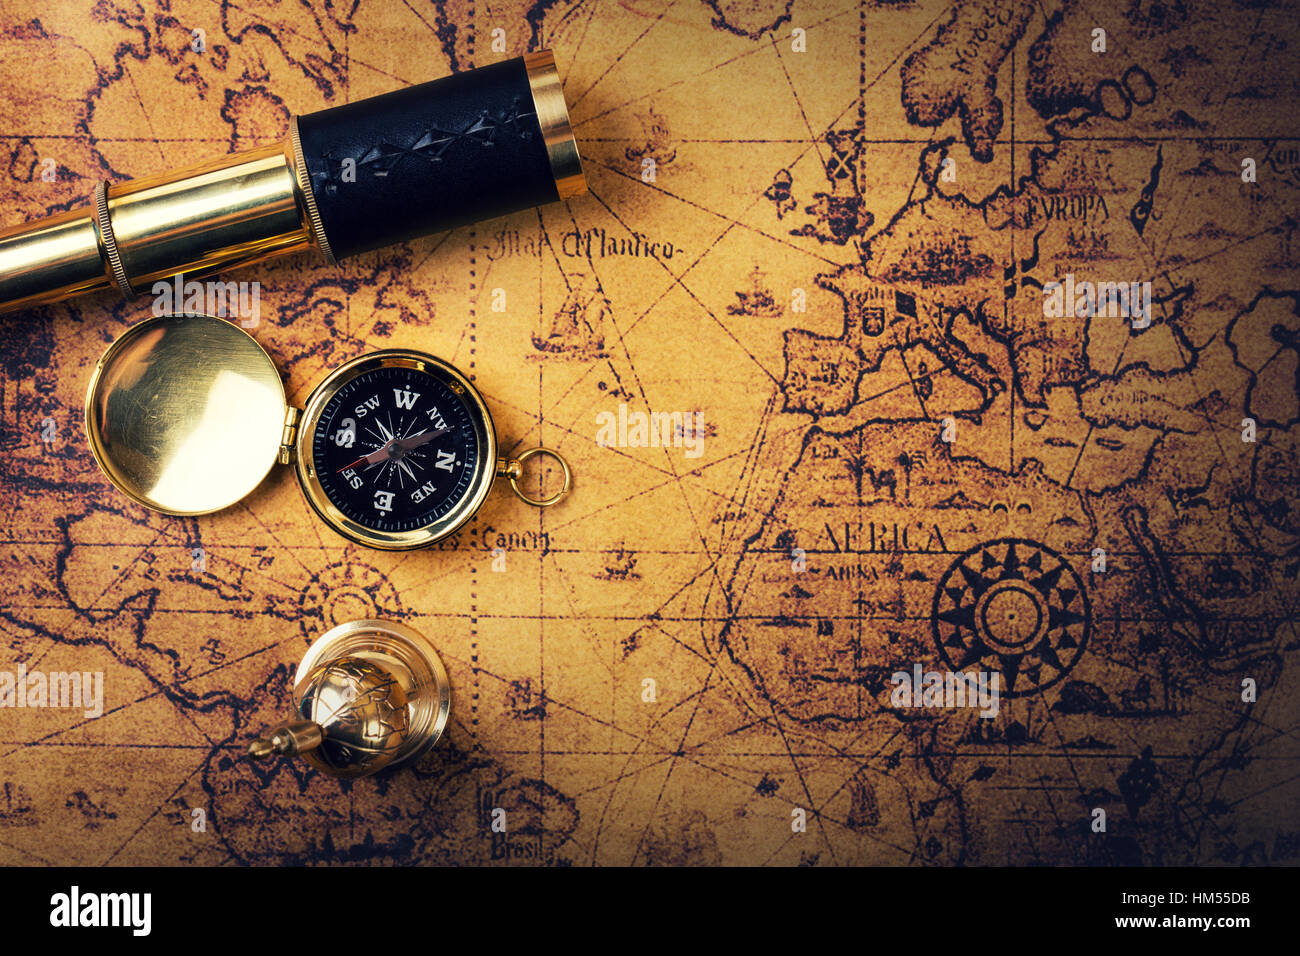 Vintage compass and spyglass on old world map stock photo royalty vintage compass and spyglass on old world map copy space stock photo sciox Gallery